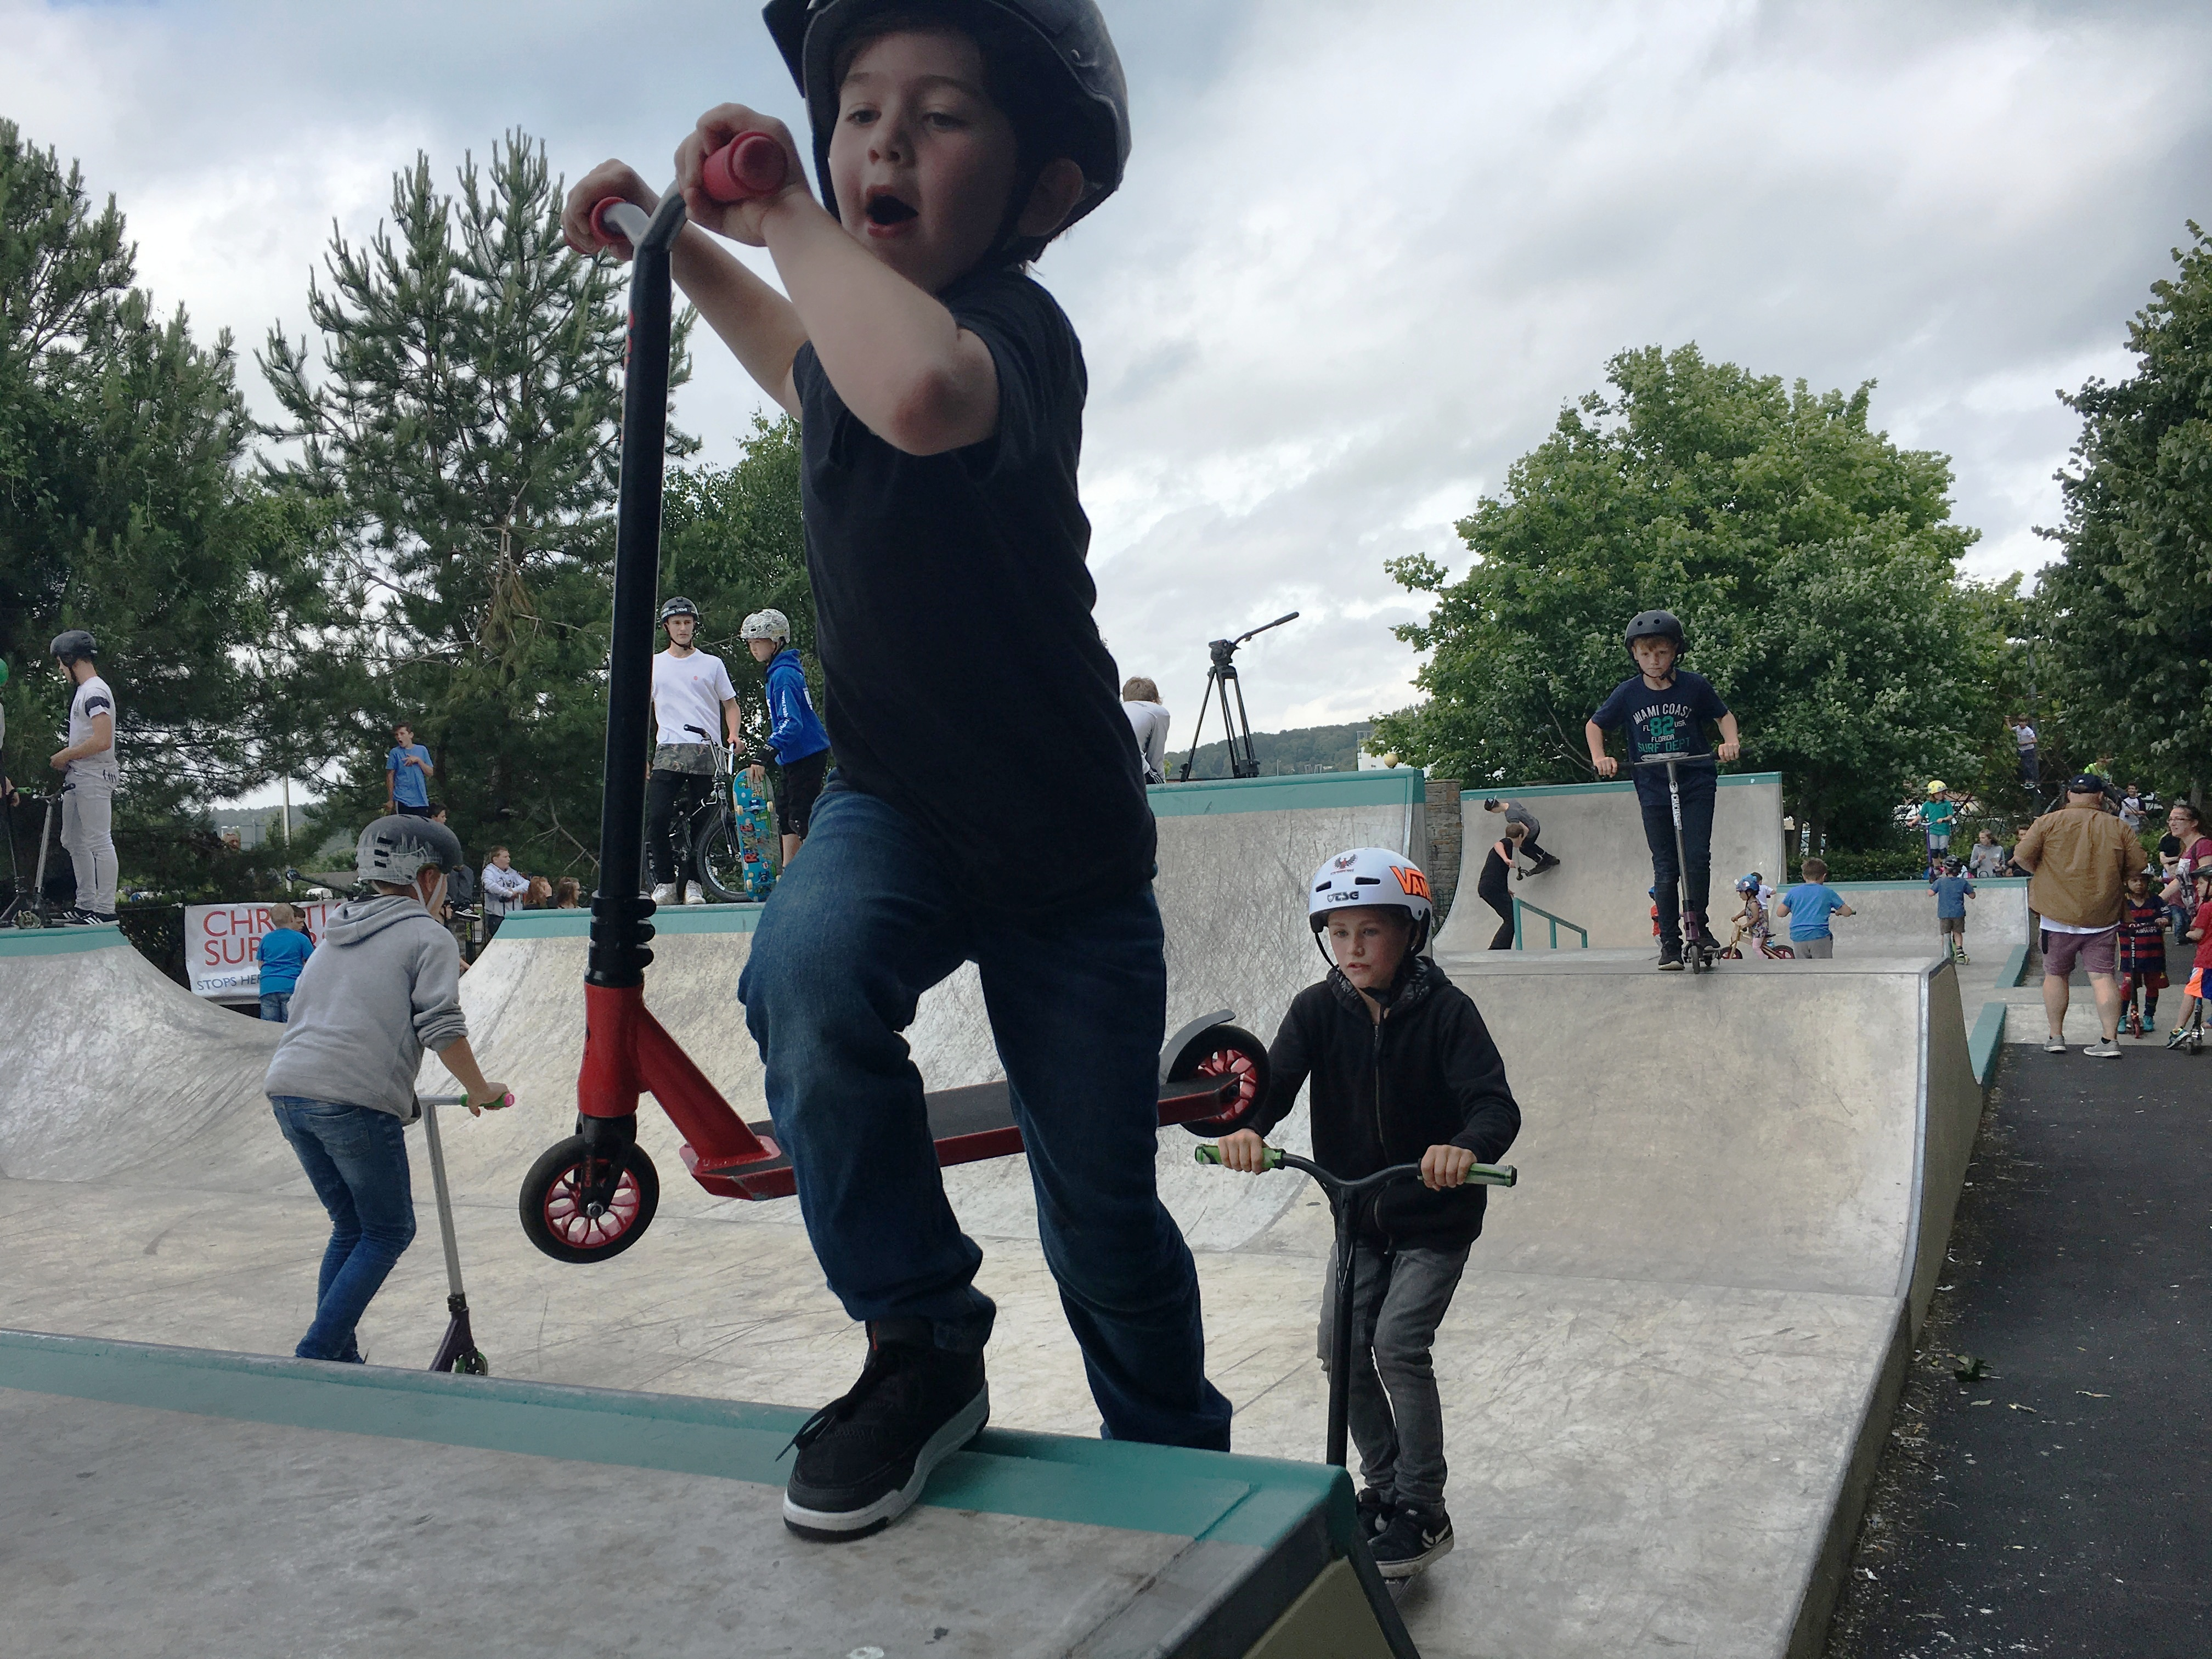 Children of all ages took part